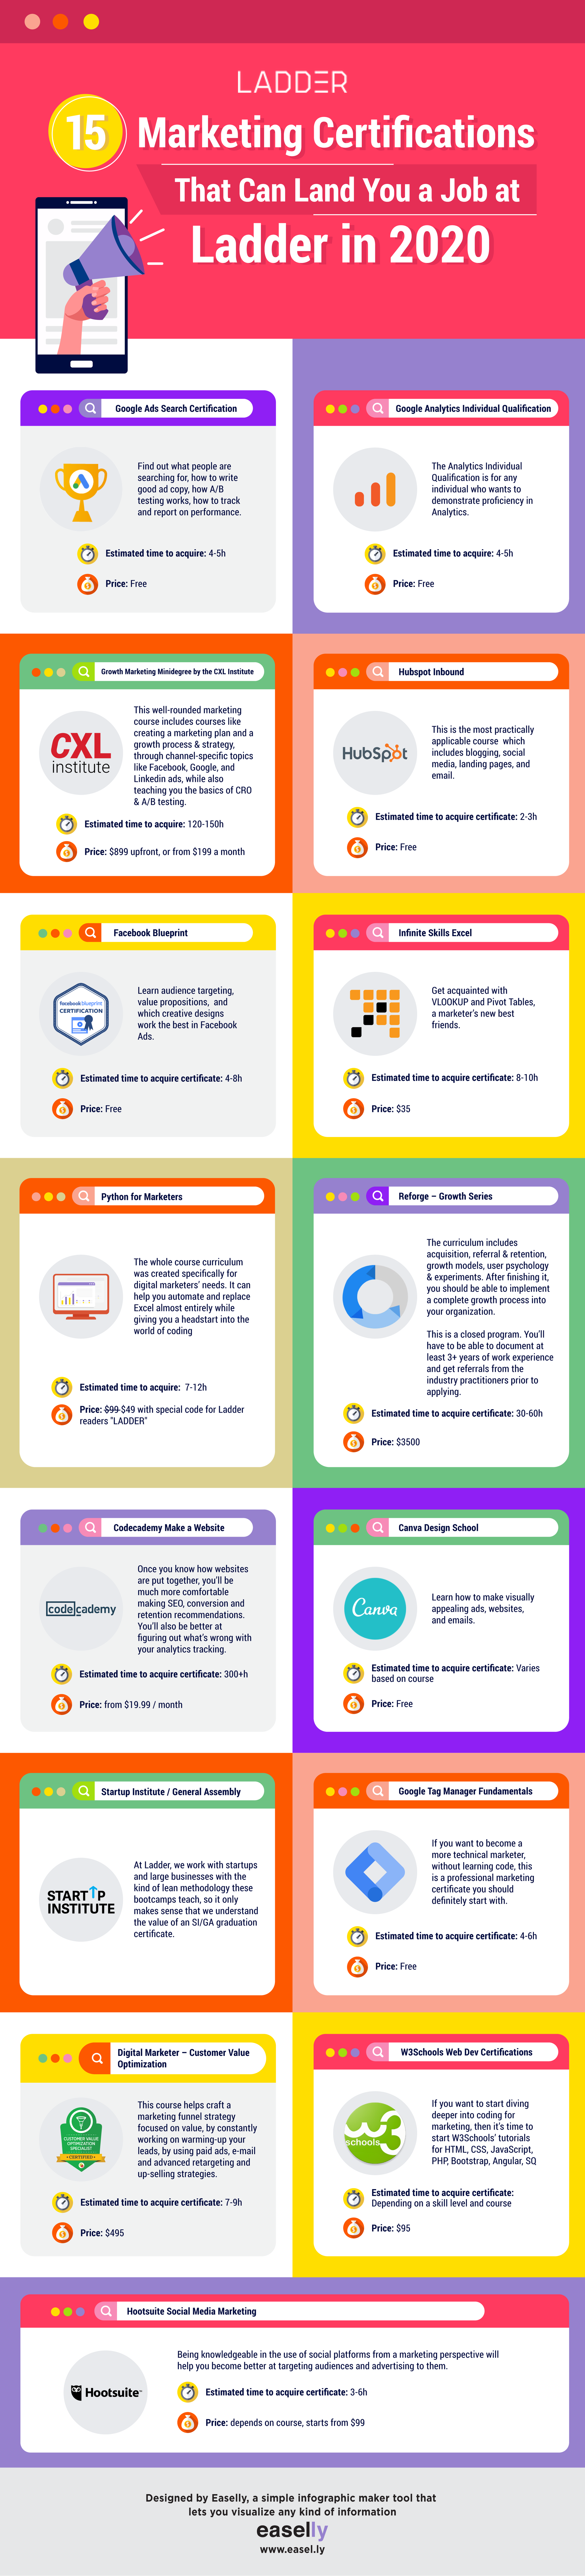 an infographic about marketing certifications